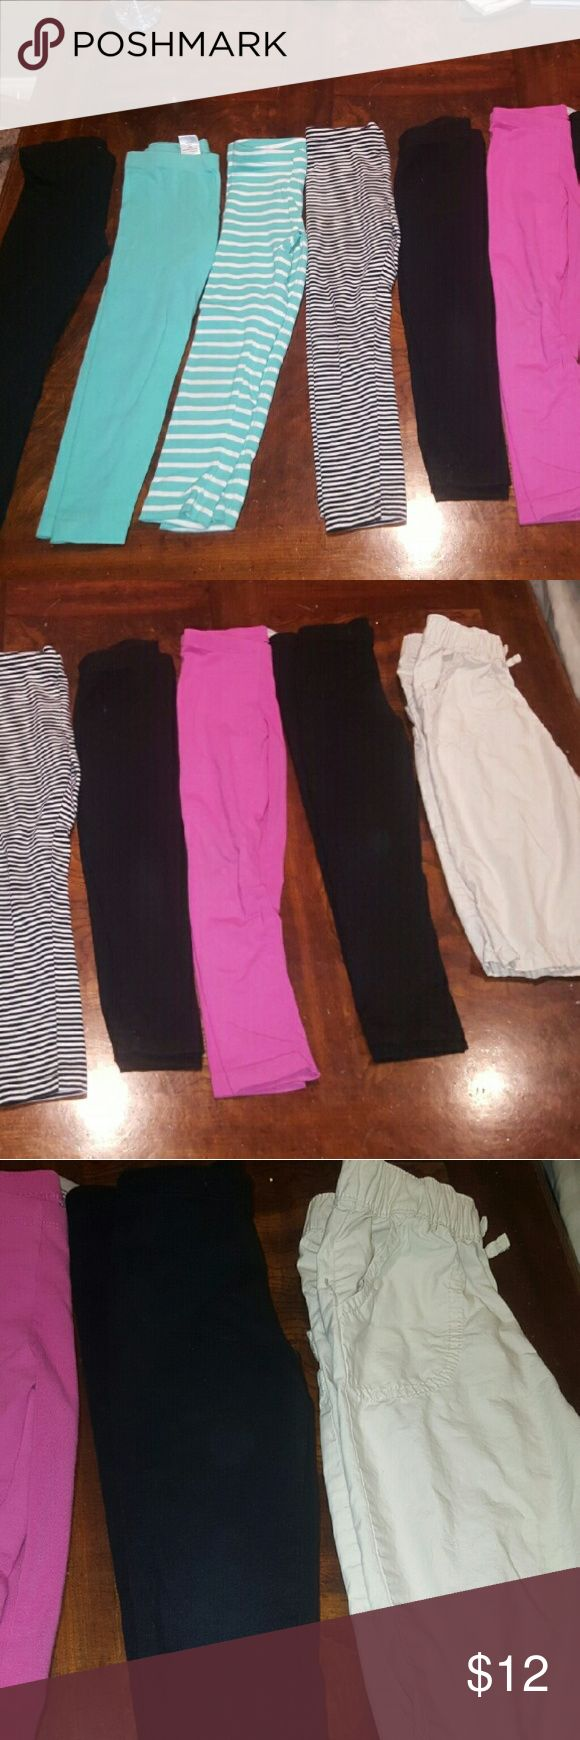 Bundle of leggings 8 You can never go wrong with having too many leggings for your child. 3 black (I buy a lot of black leggings never can have too many) 2 minty blue, 1 stripe black and white, 1 pink, and 1 khaki Capris light weight. Brands: circo aka target, gymboree, children's place, Kirkland- Costco, Bottoms Leggings